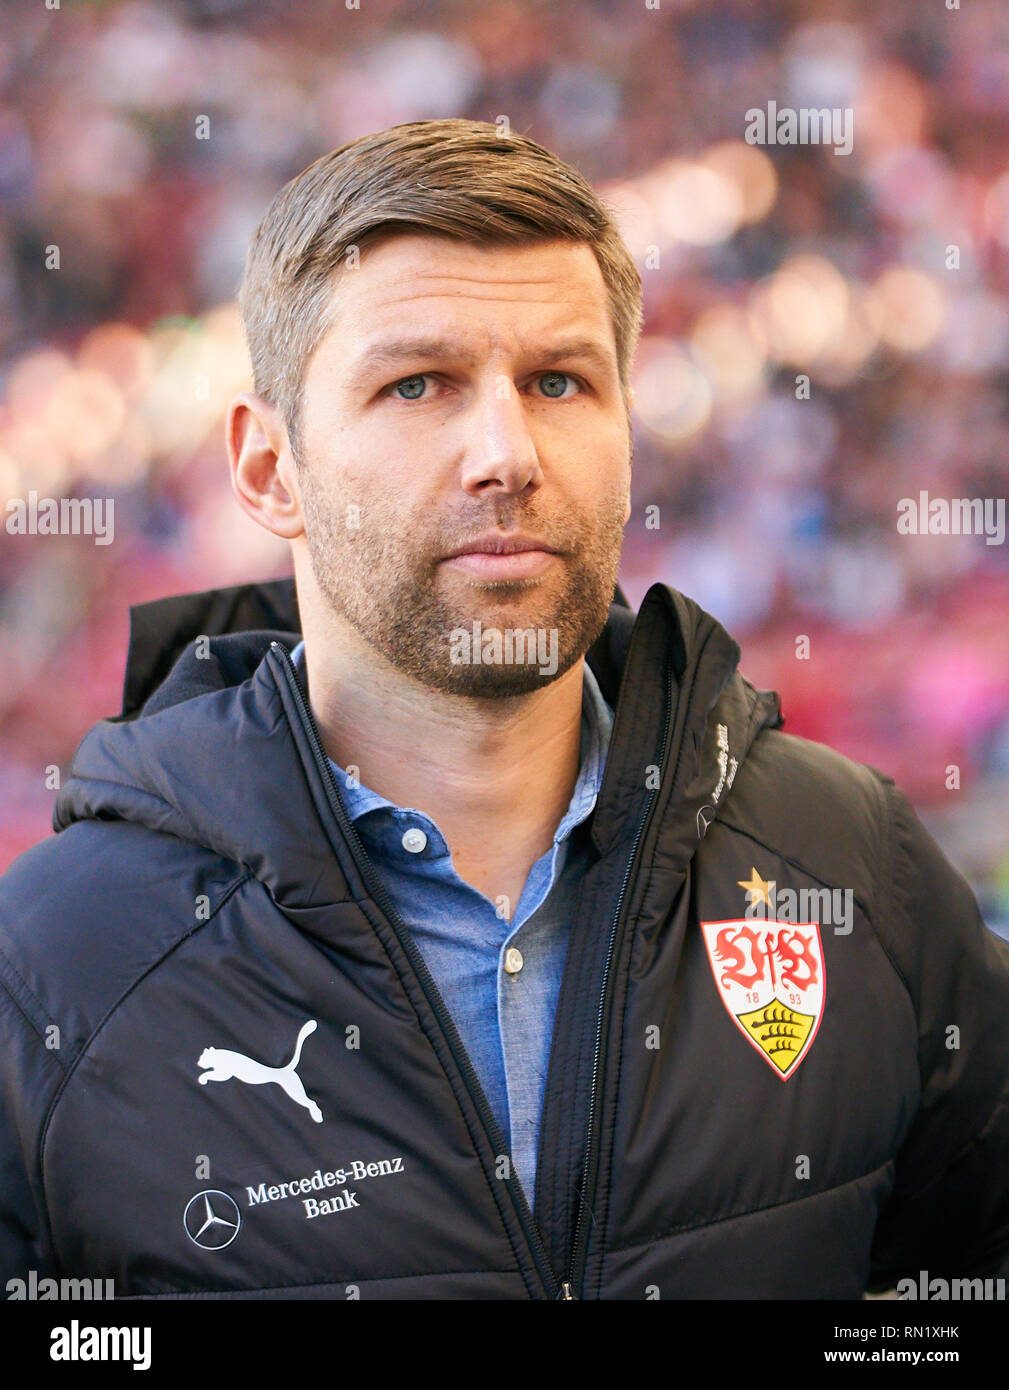 Thomas HITZLSPERGER, VFB Sportdirektor, Manager, sportlicher Leiter,  half-size, portrait,  VFB STUTTGART - RB LEIPZIG  - DFL REGULATIONS PROHIBIT ANY USE OF PHOTOGRAPHS as IMAGE SEQUENCES and/or QUASI-VIDEO -  DFL 1.German Soccer League , Stuttgart, February 16, 2018,  Season 2018/2019, matchday 23, shows red card to Bull,  © Peter Schatz / Alamy Live News Stock Photo